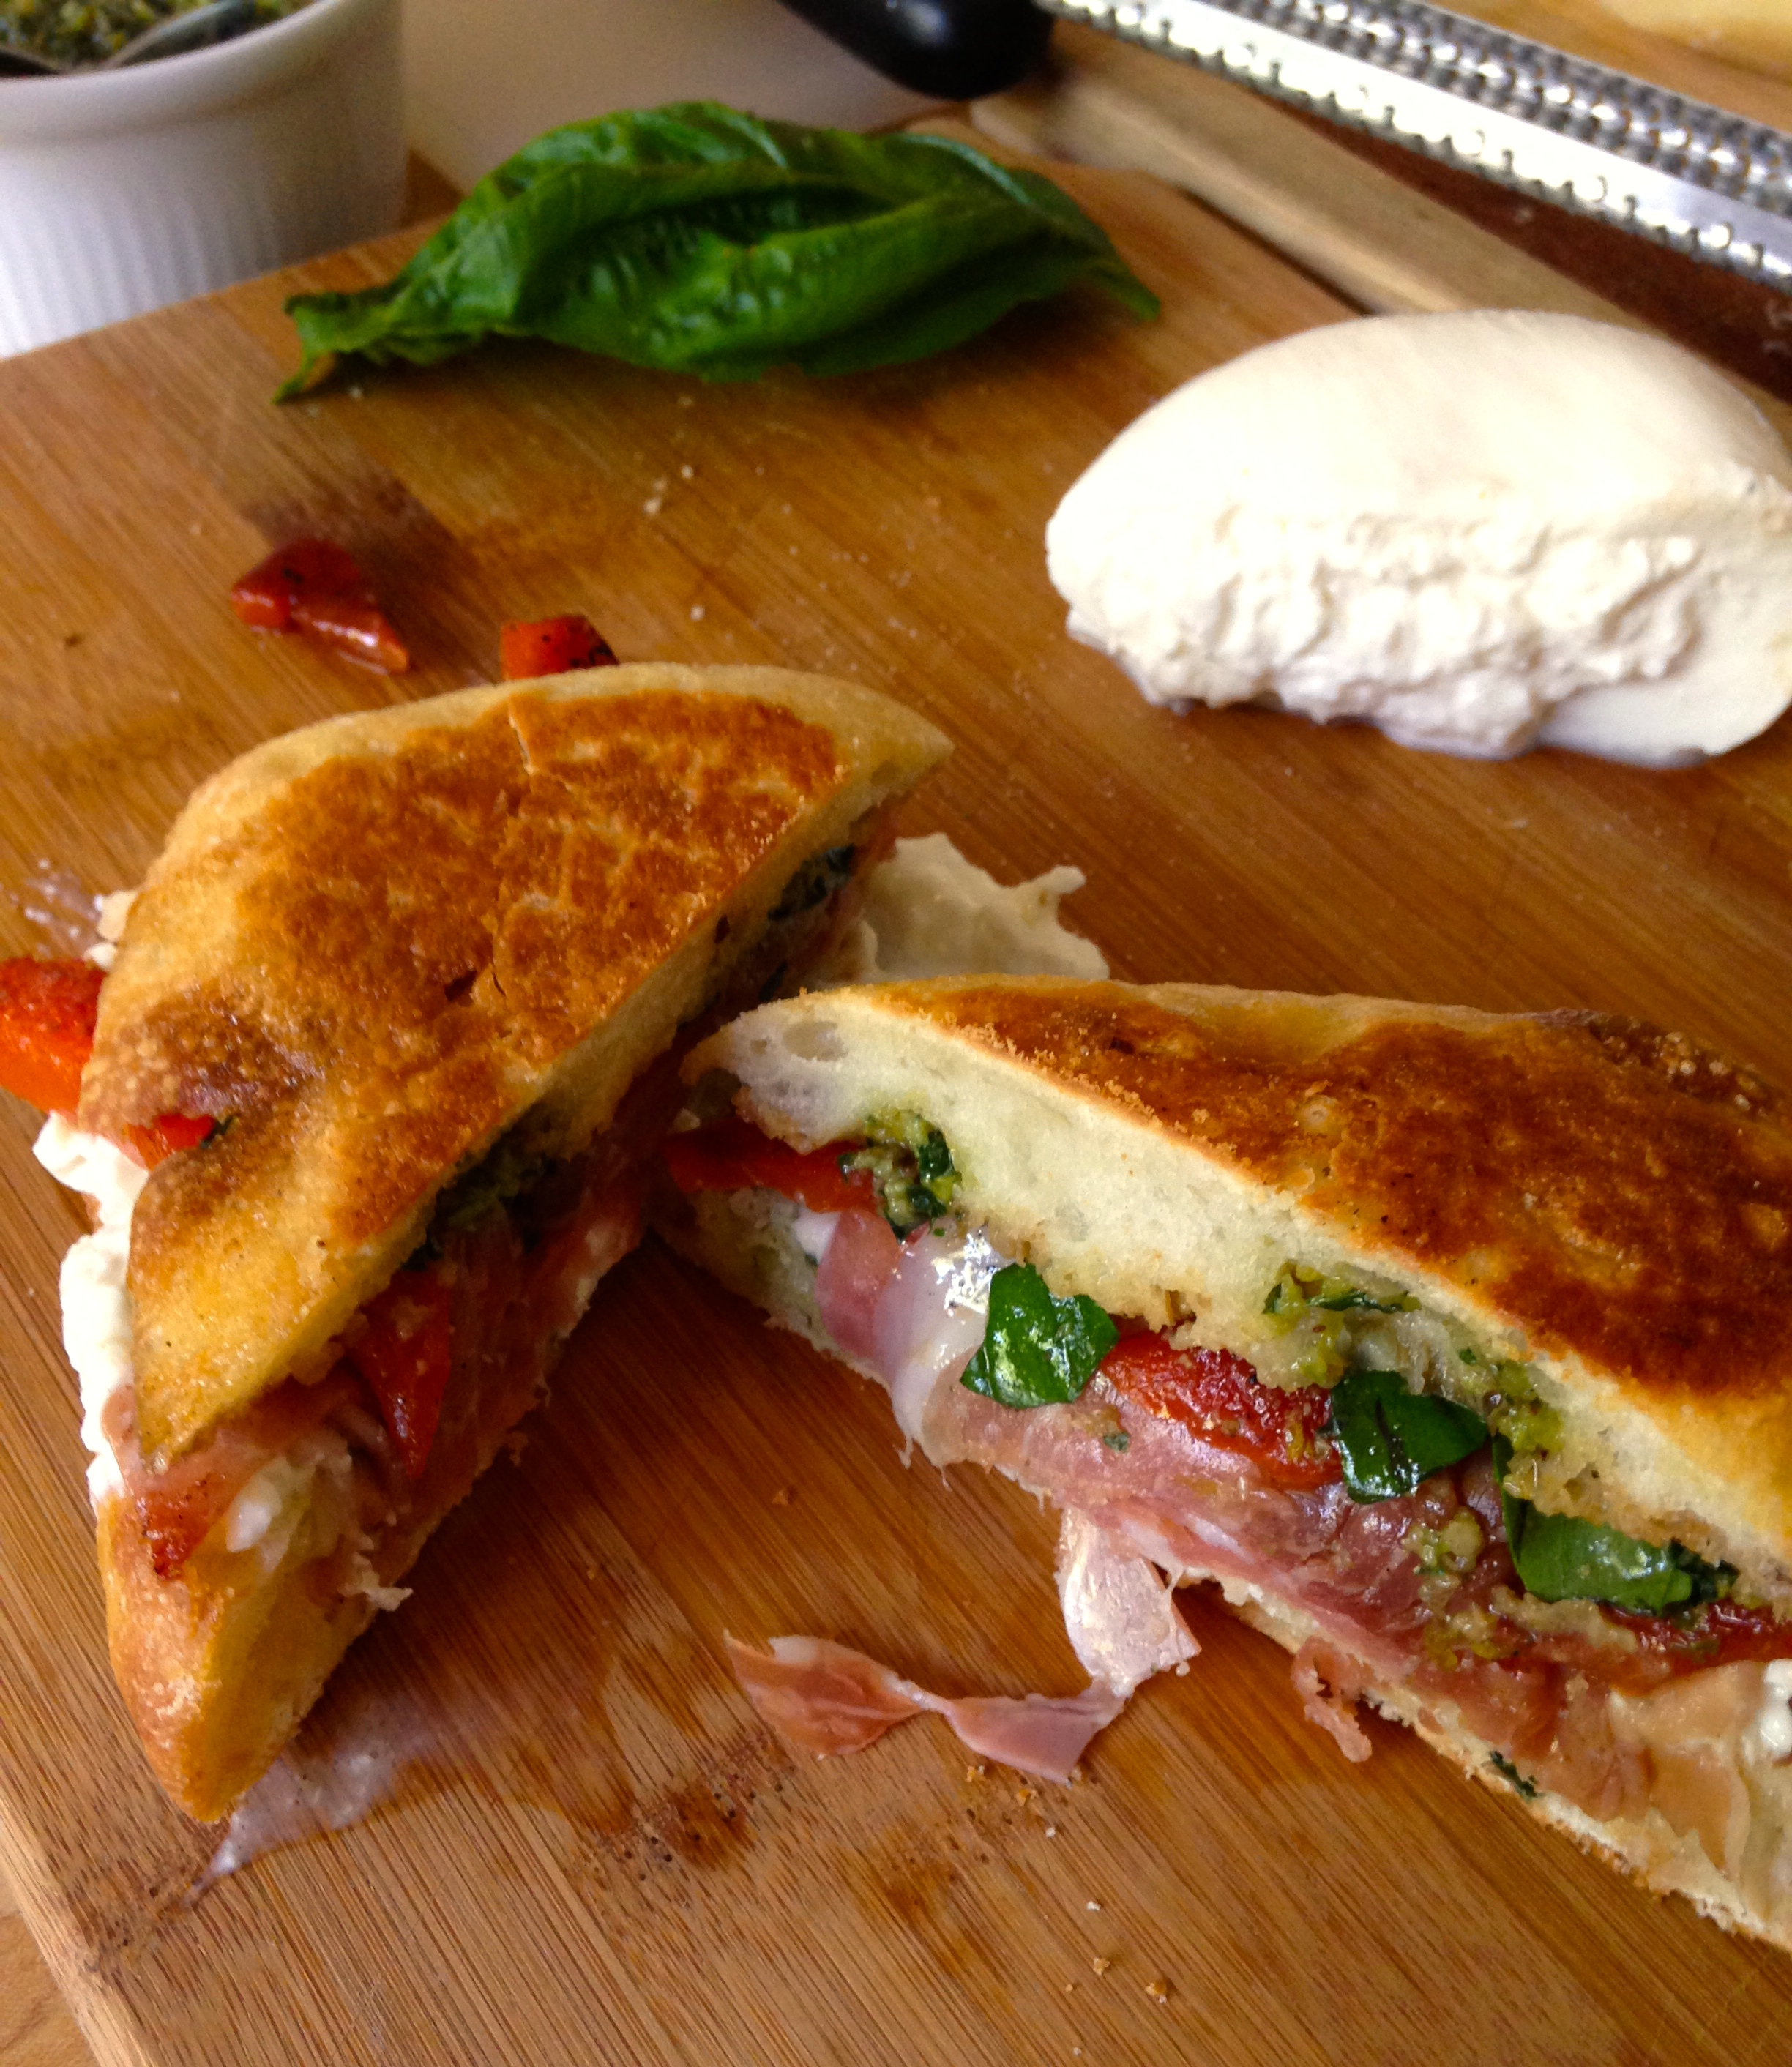 fresh mozzarella, proscuitto and roasted red peppers